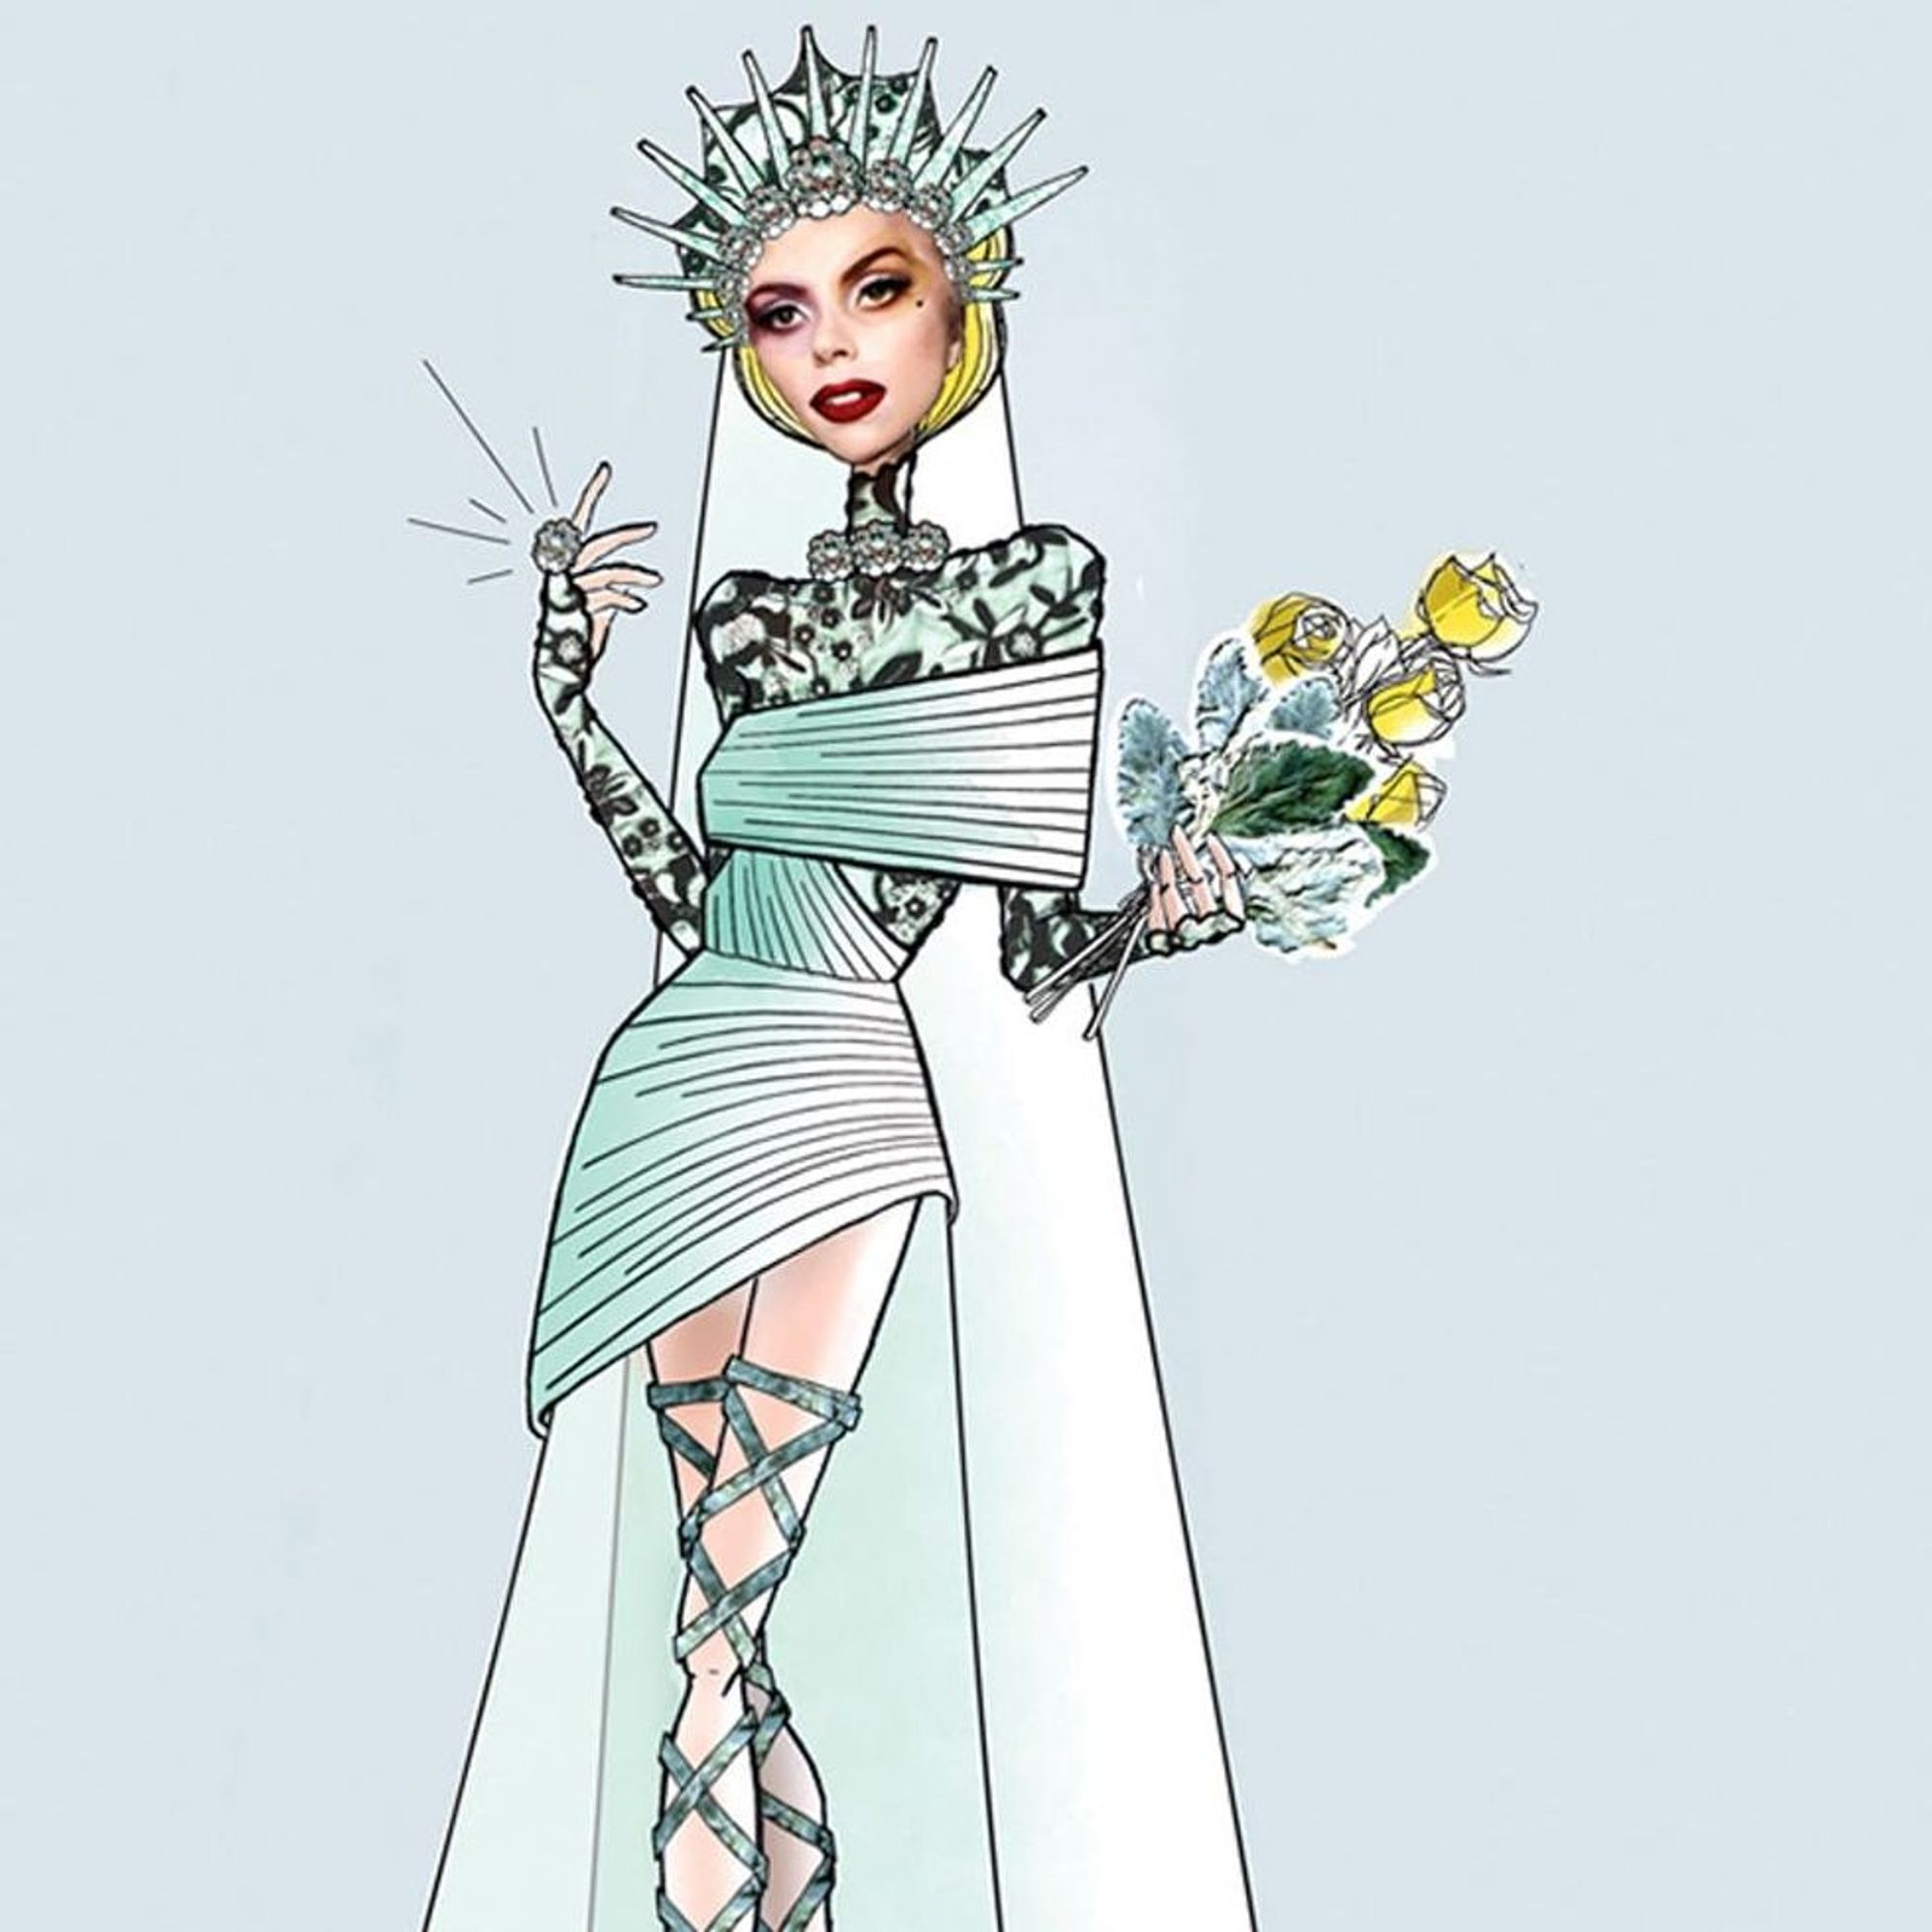 See What Karl Lagerfeld, Monique Lhuillier + More Designed for Lady Gaga's Wedding Dress